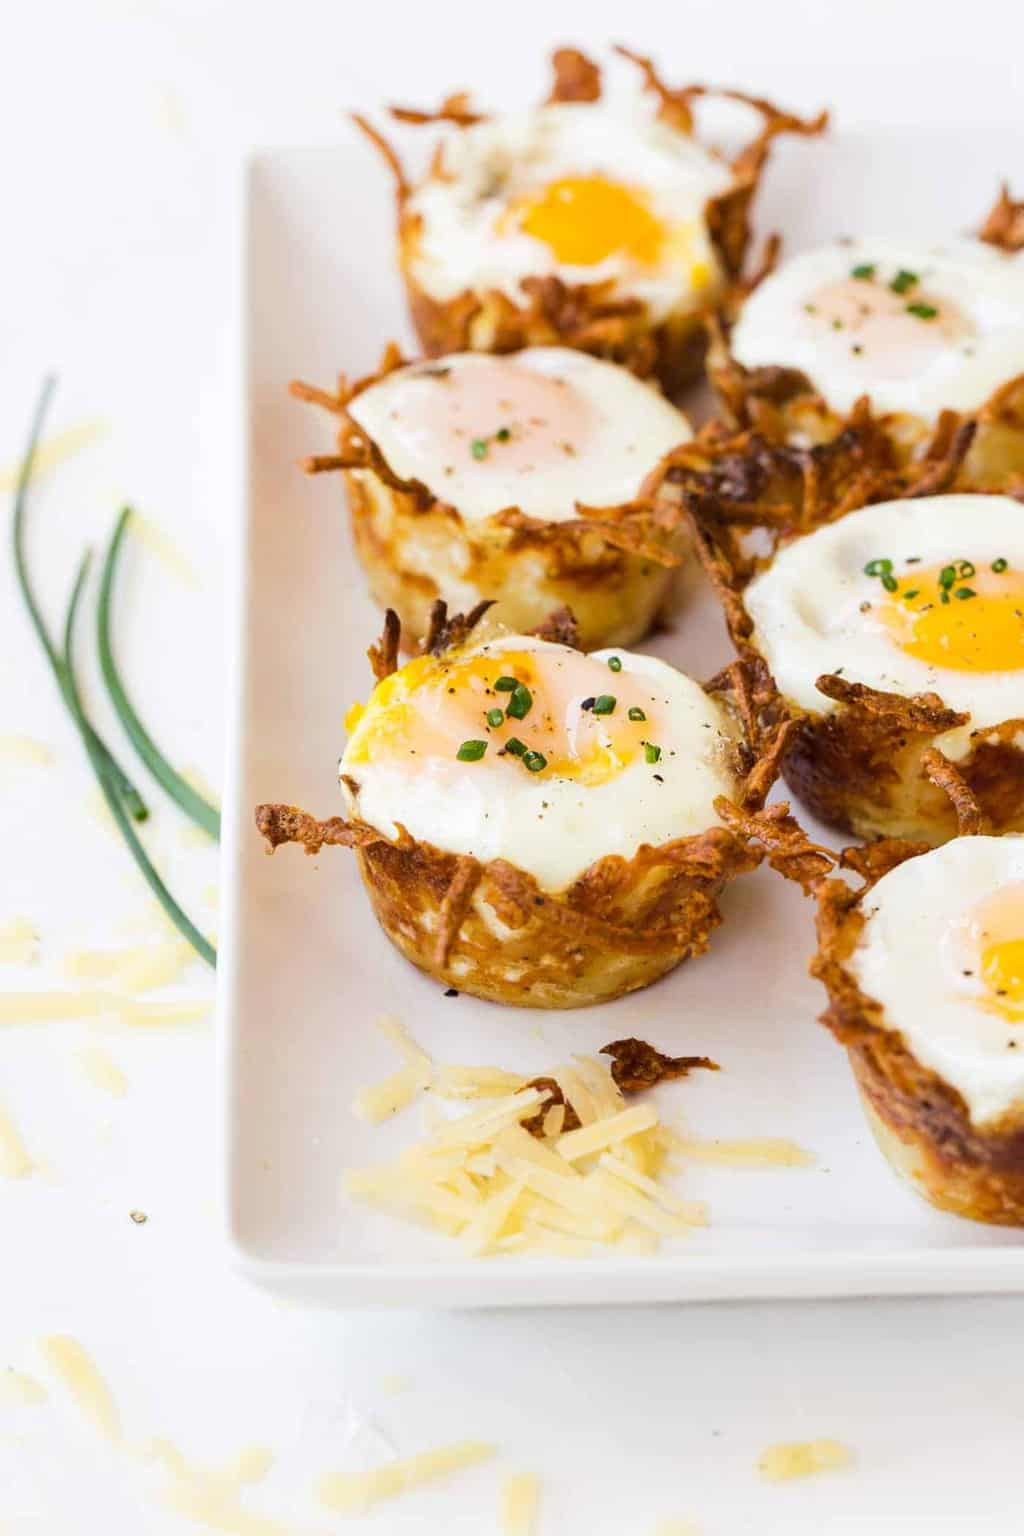 White platter filled with Sausage, Cheese and Hash Brown Cups. Eggs are baked in the hash brown cups. Garnished with shredded cheese and chives.